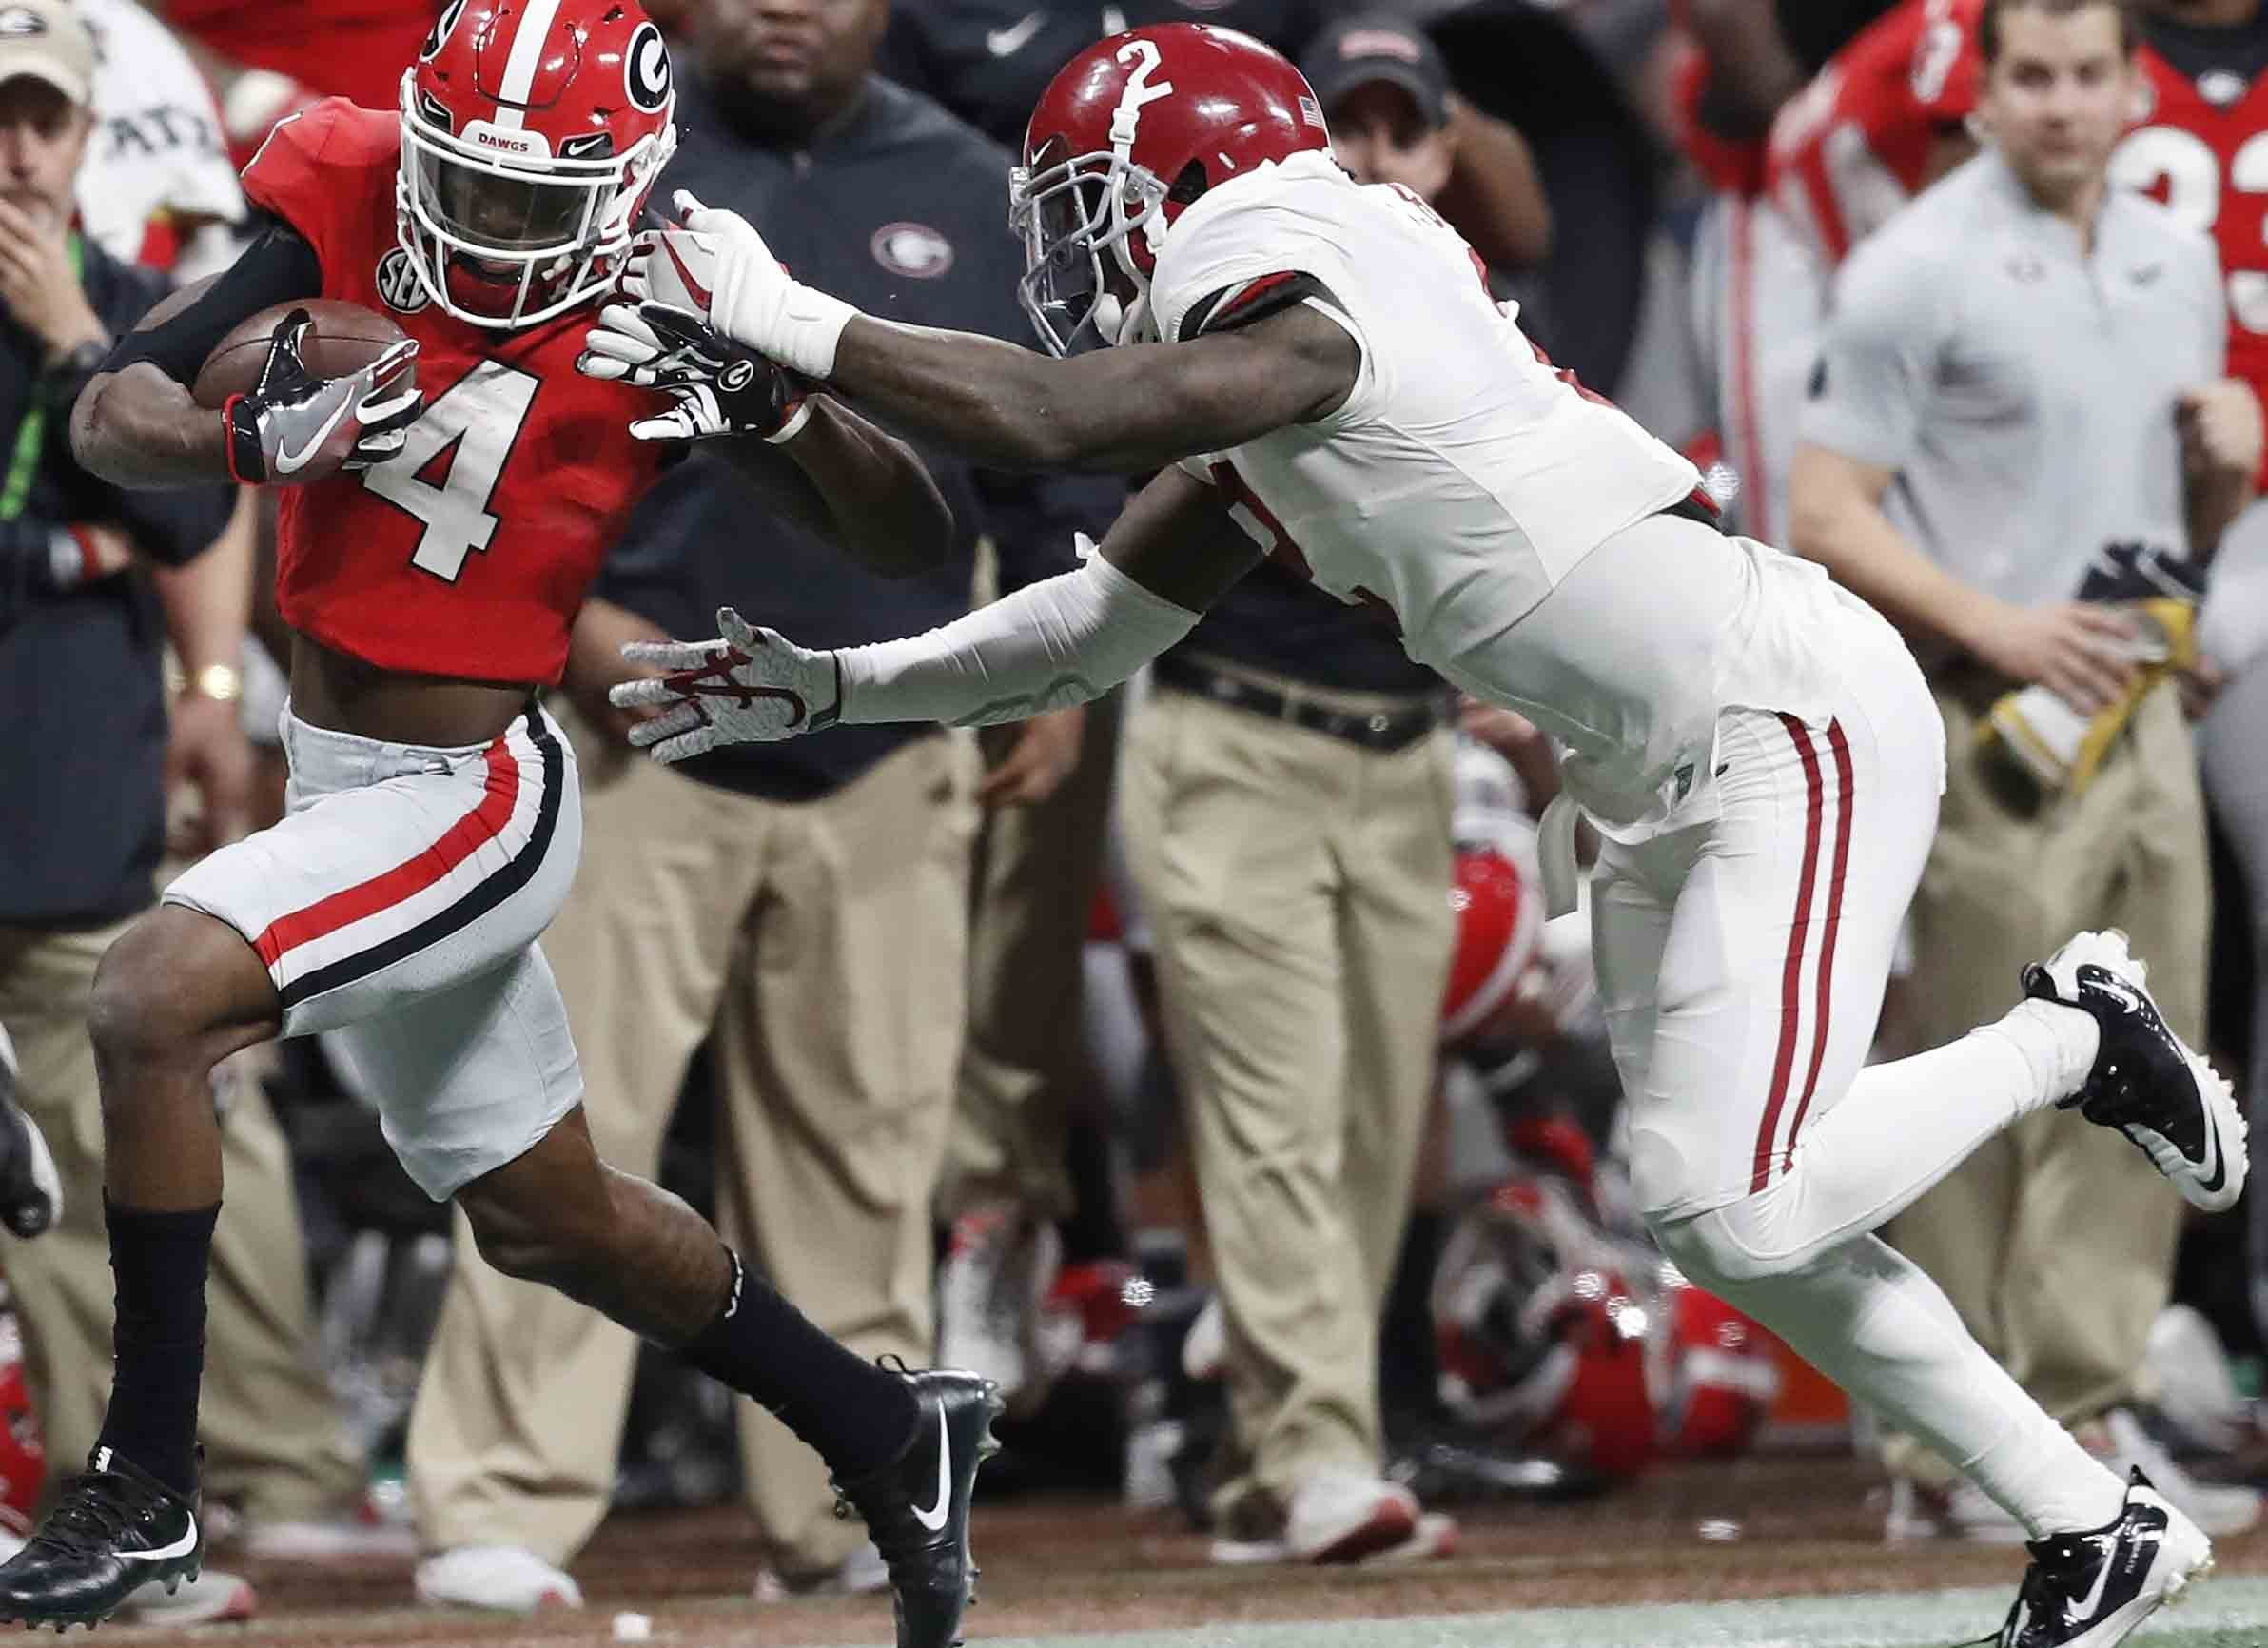 Georgia wide receiver Mecole Hardman gets past Alabama defensive back Tony Brown for a touchdown catch during the third quarter. (AP Photo/David Goldman)